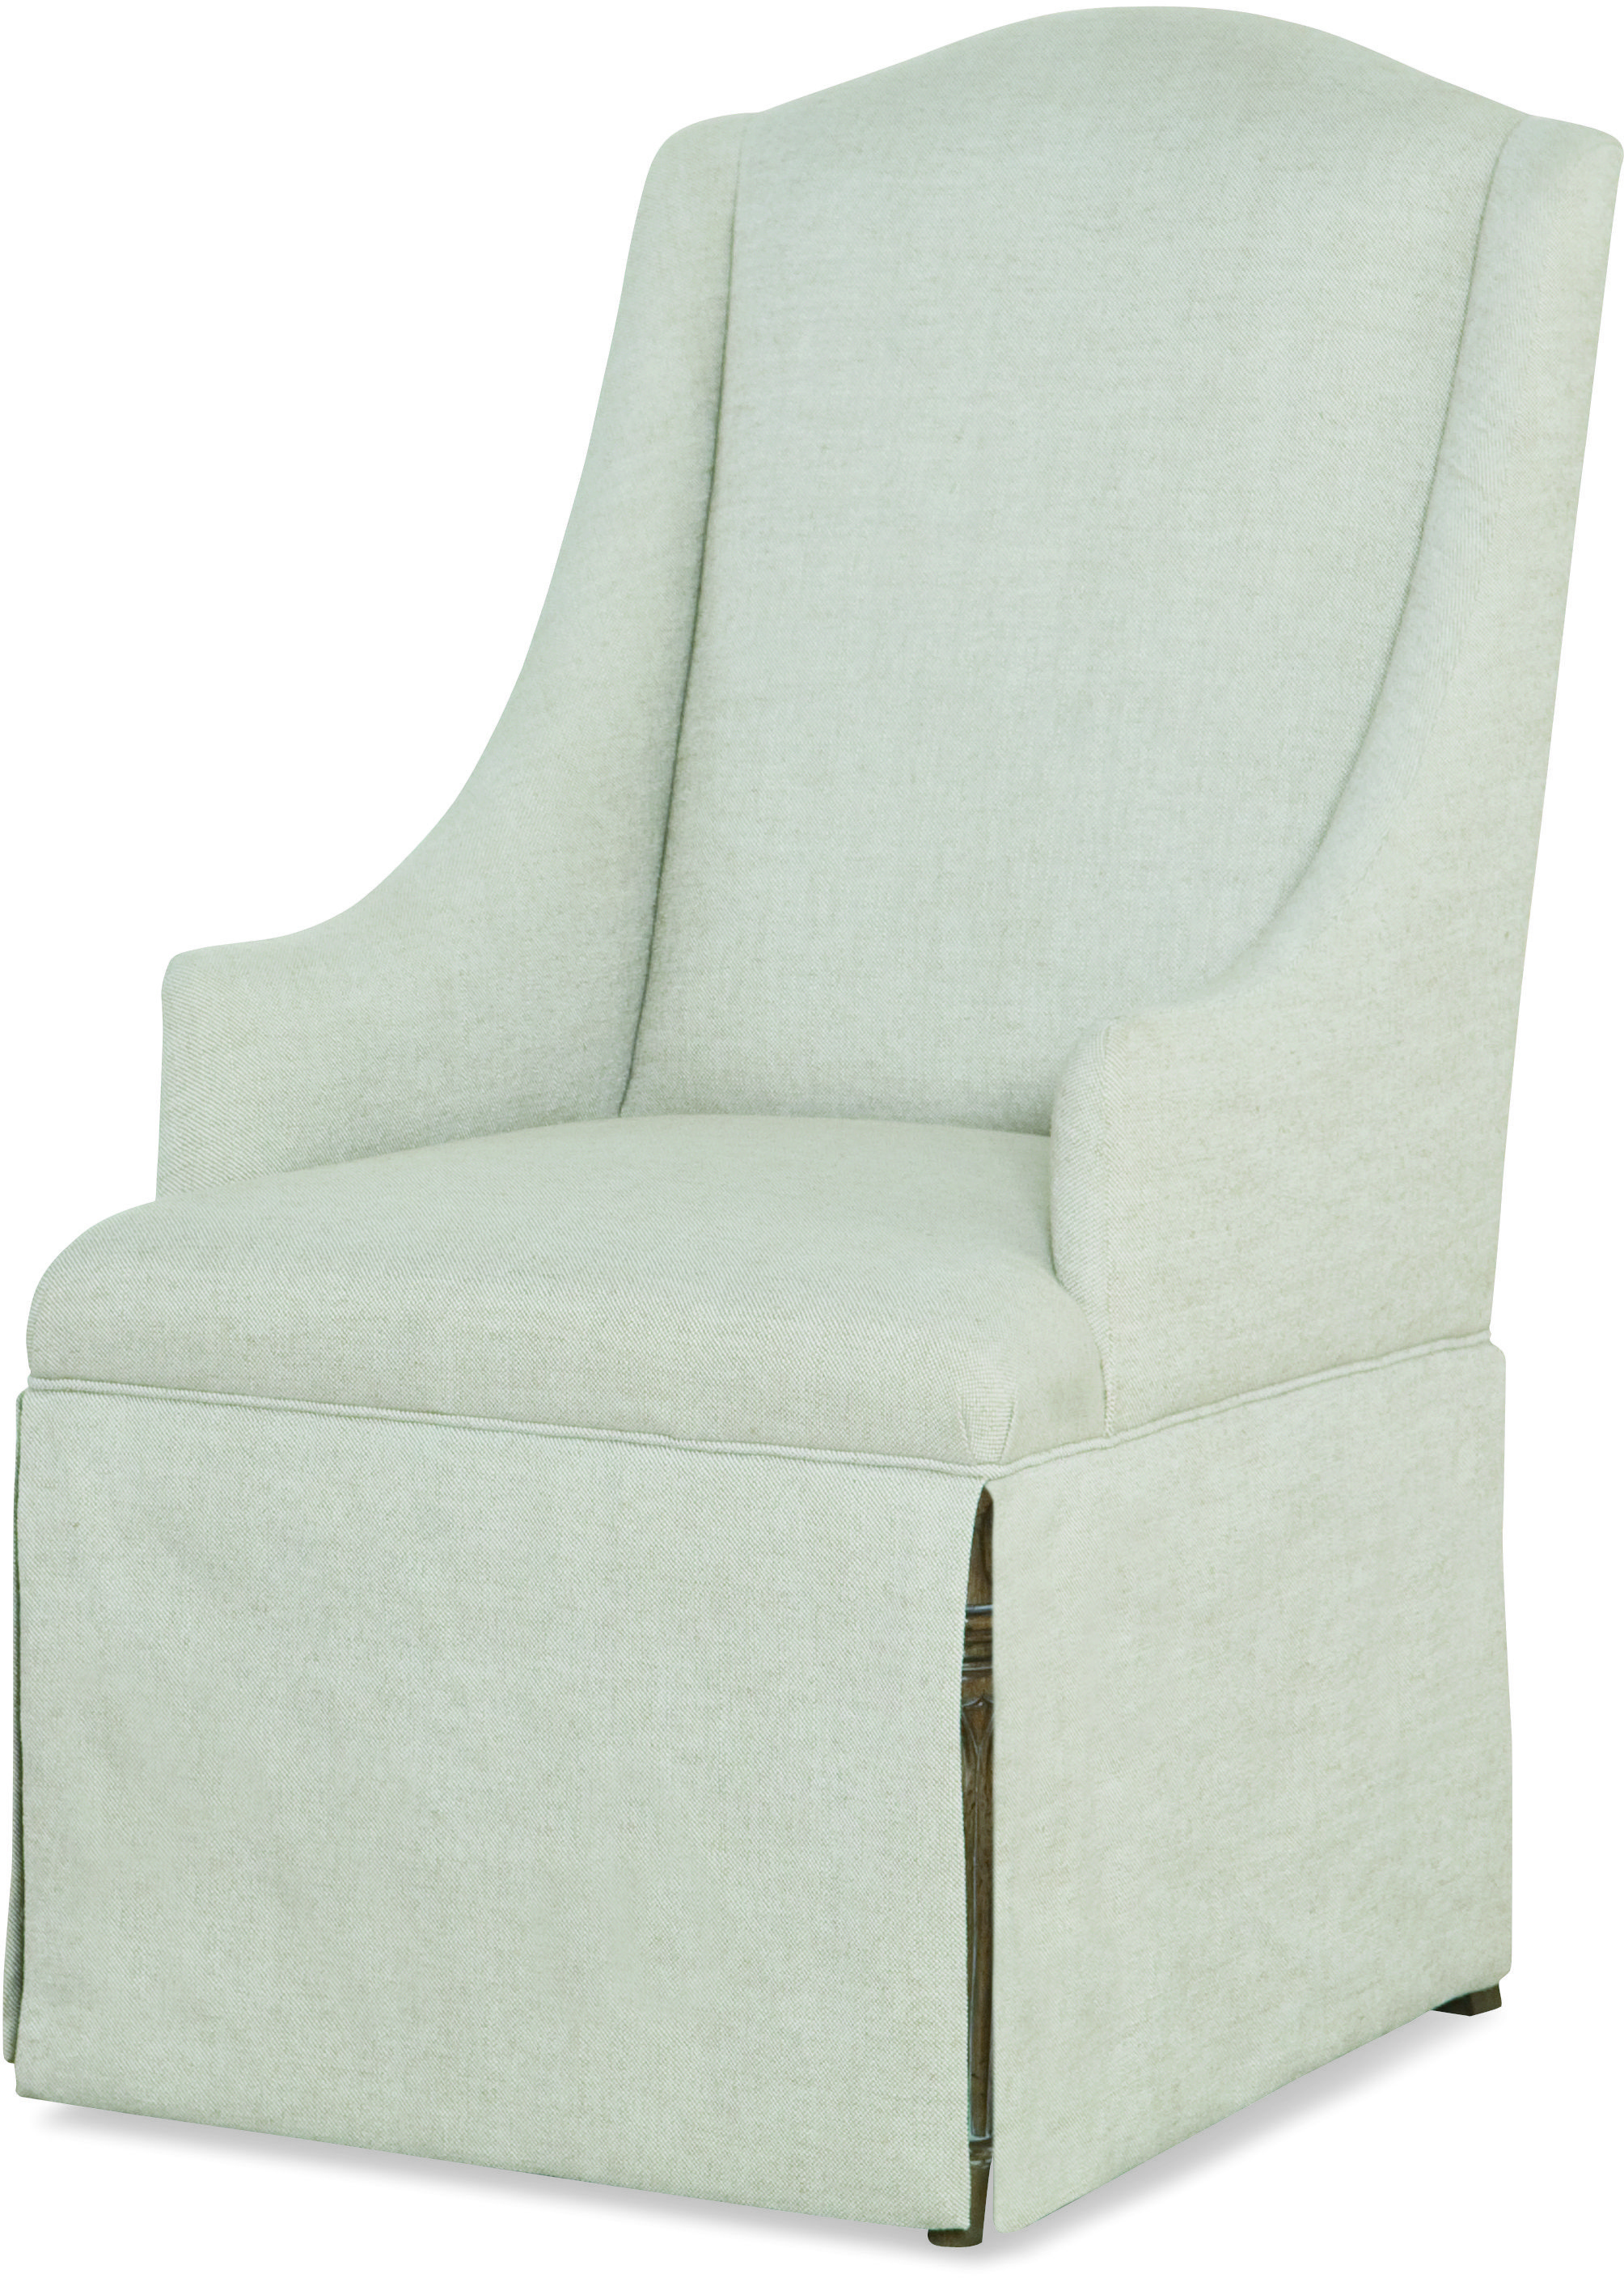 Legacy Classic Renaissance Upholstered Host Chair  - Item Number: 5500-451 KD